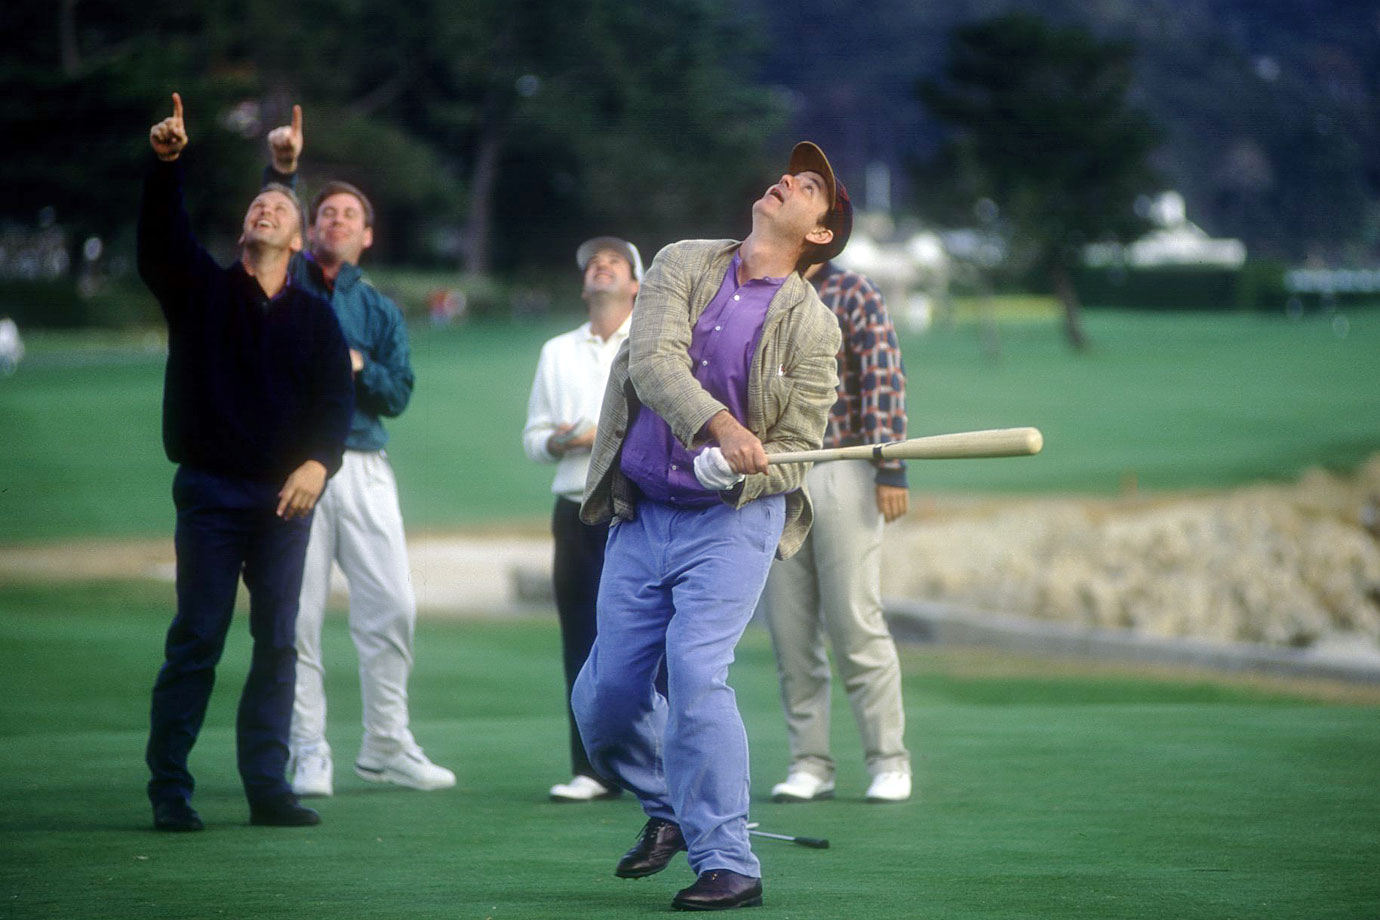 Bill Murray pops up his golf ball with a baseball bat on the 18th green of the AT&T Pebble Beach National Pro-Am golf tournament on Feb. 5, 1994 at Pebble Beach, Calif.